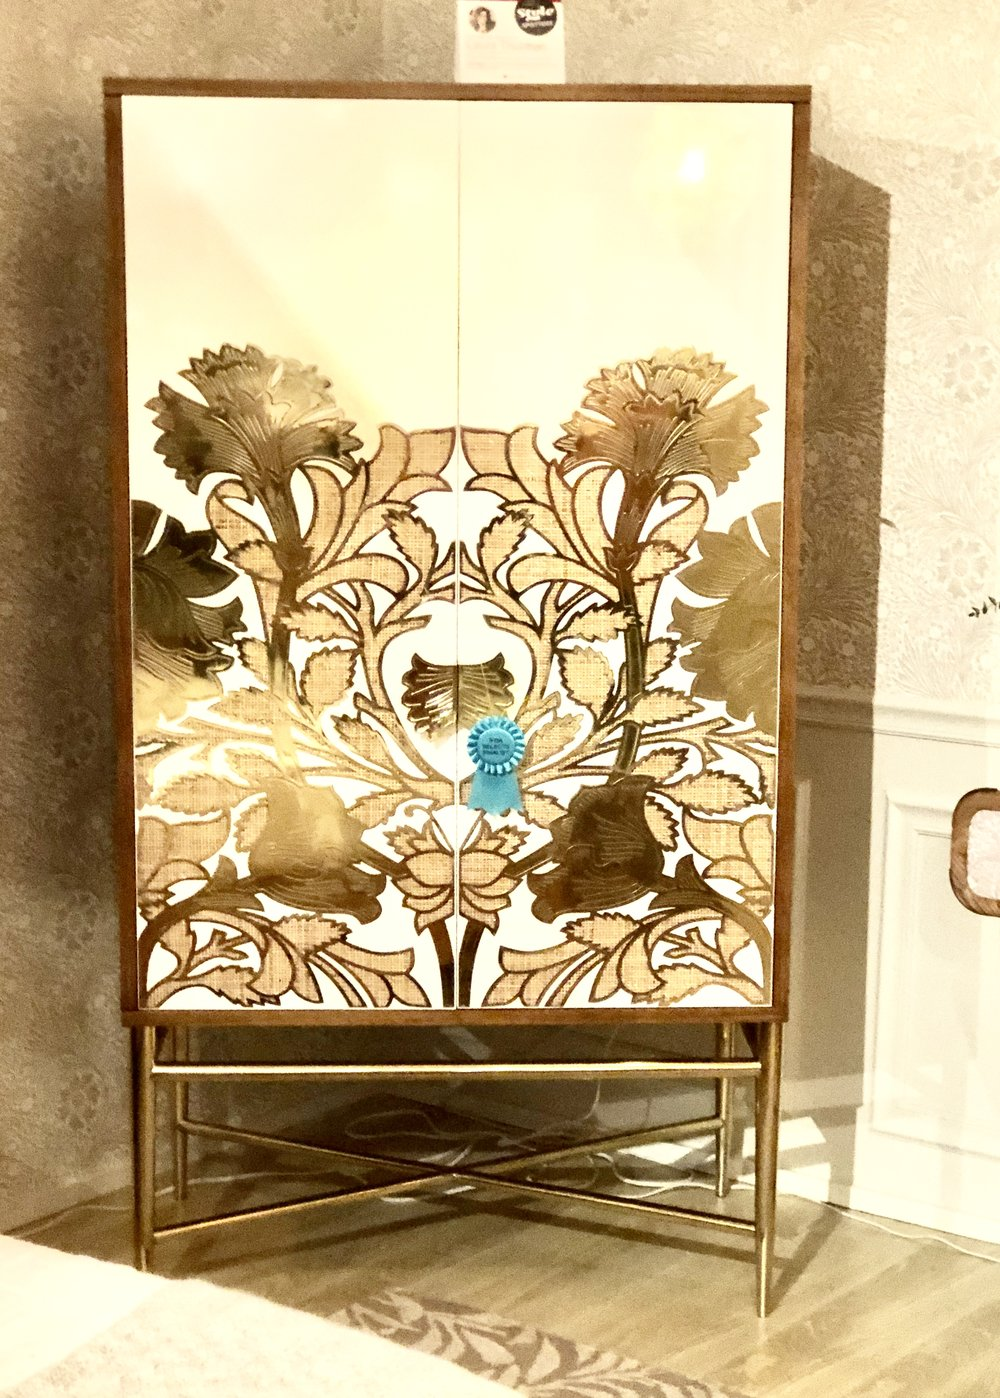 Notice how this large piece incorporates many trends: the bright brass, wicker underneath the pattern, and glossy white as a background for the floral motif.